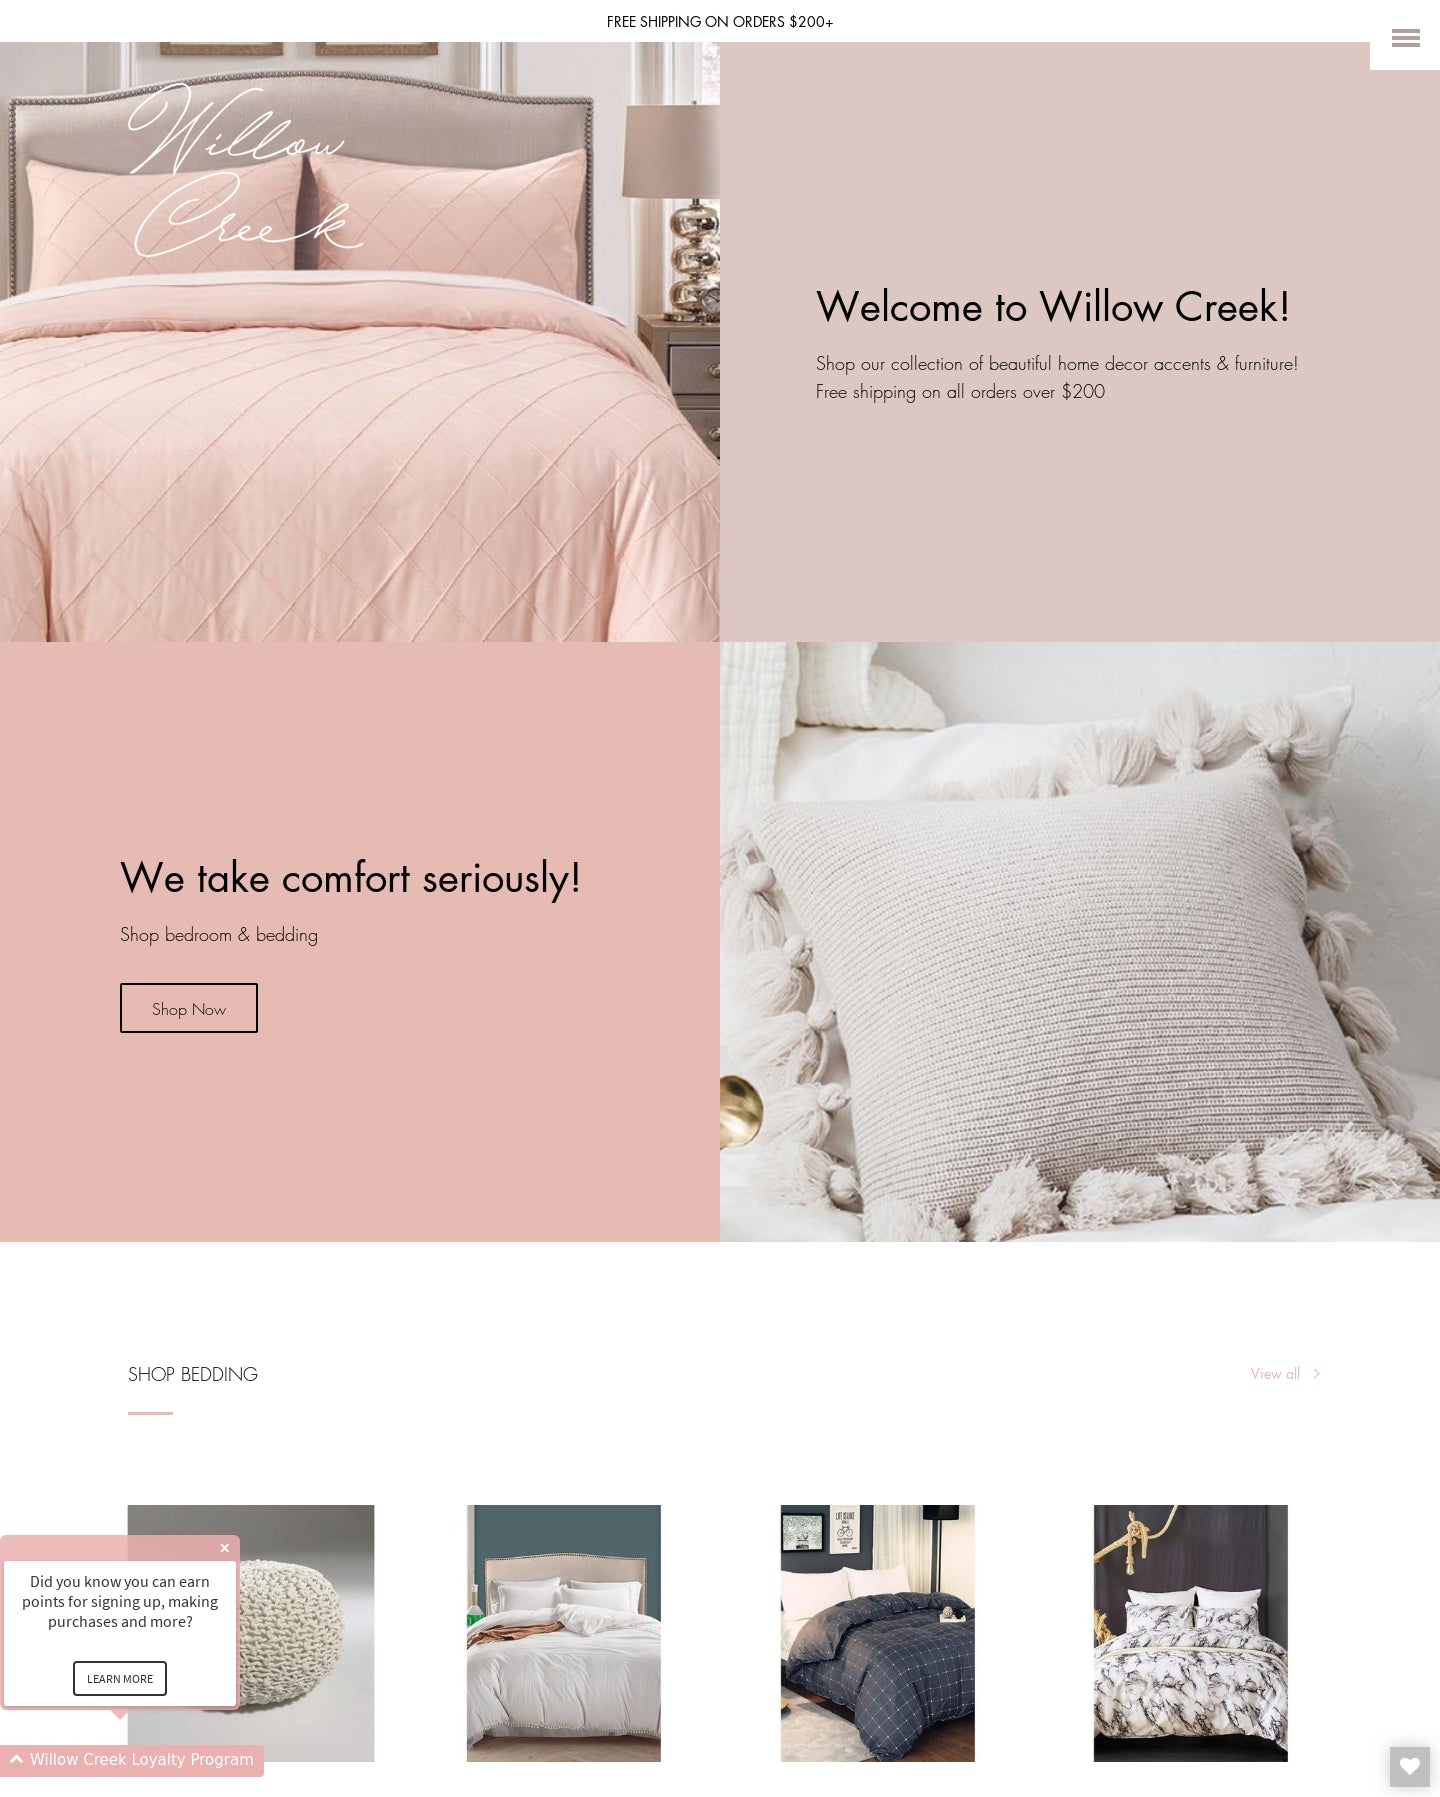 Willow Creek Home | High Quality Dropshipping Home Decor and Furniture e-Commerce Store Screenshot - 1